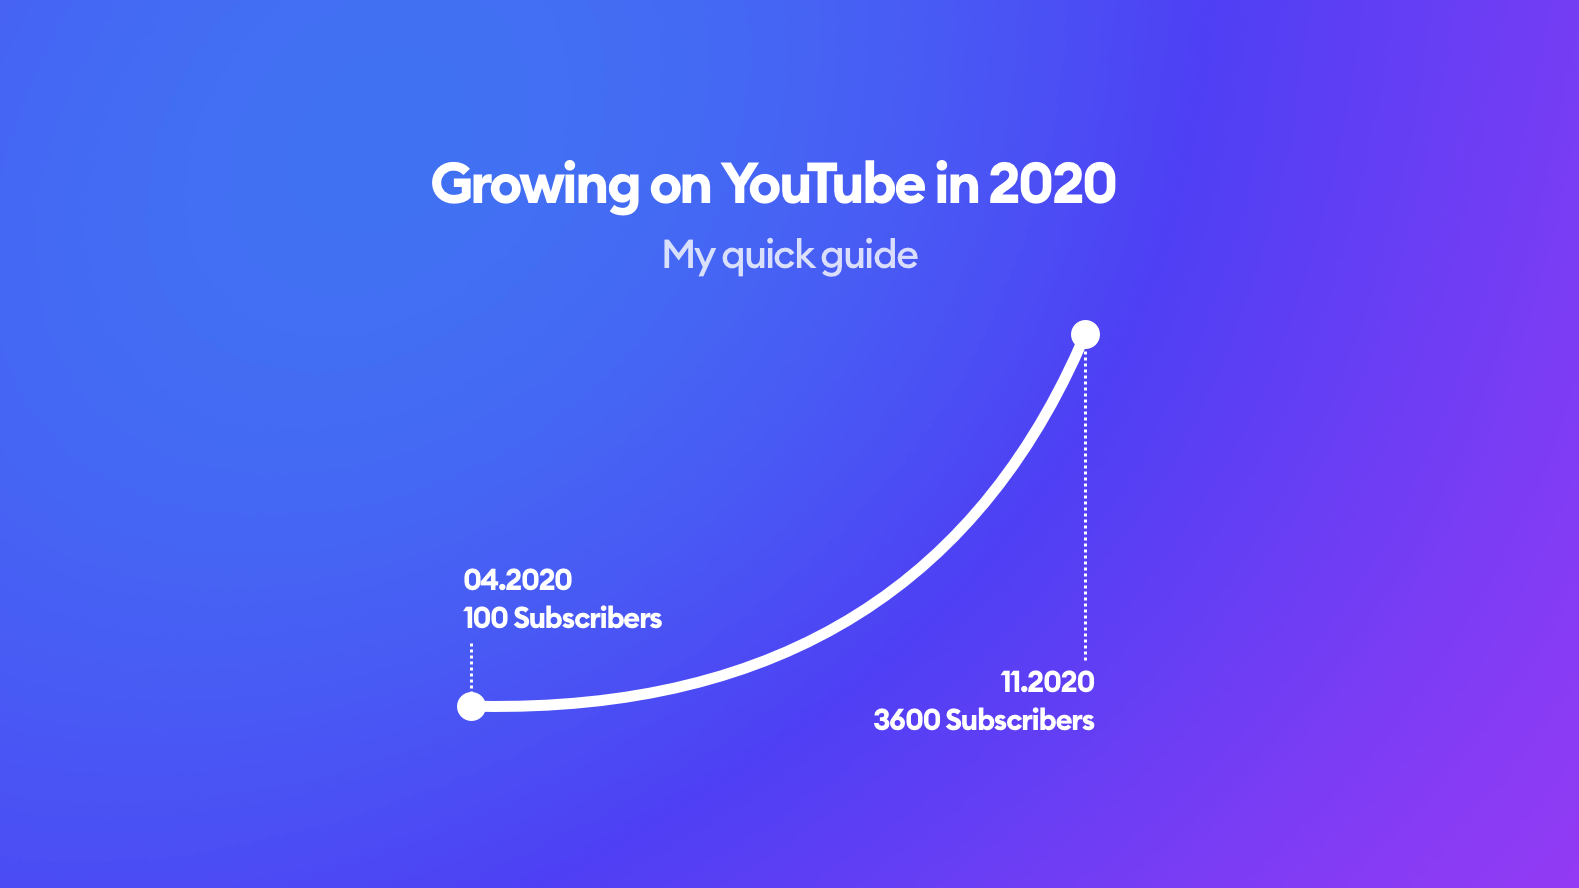 Growing a YouTube channel to 3600 Subscribers in 7 months